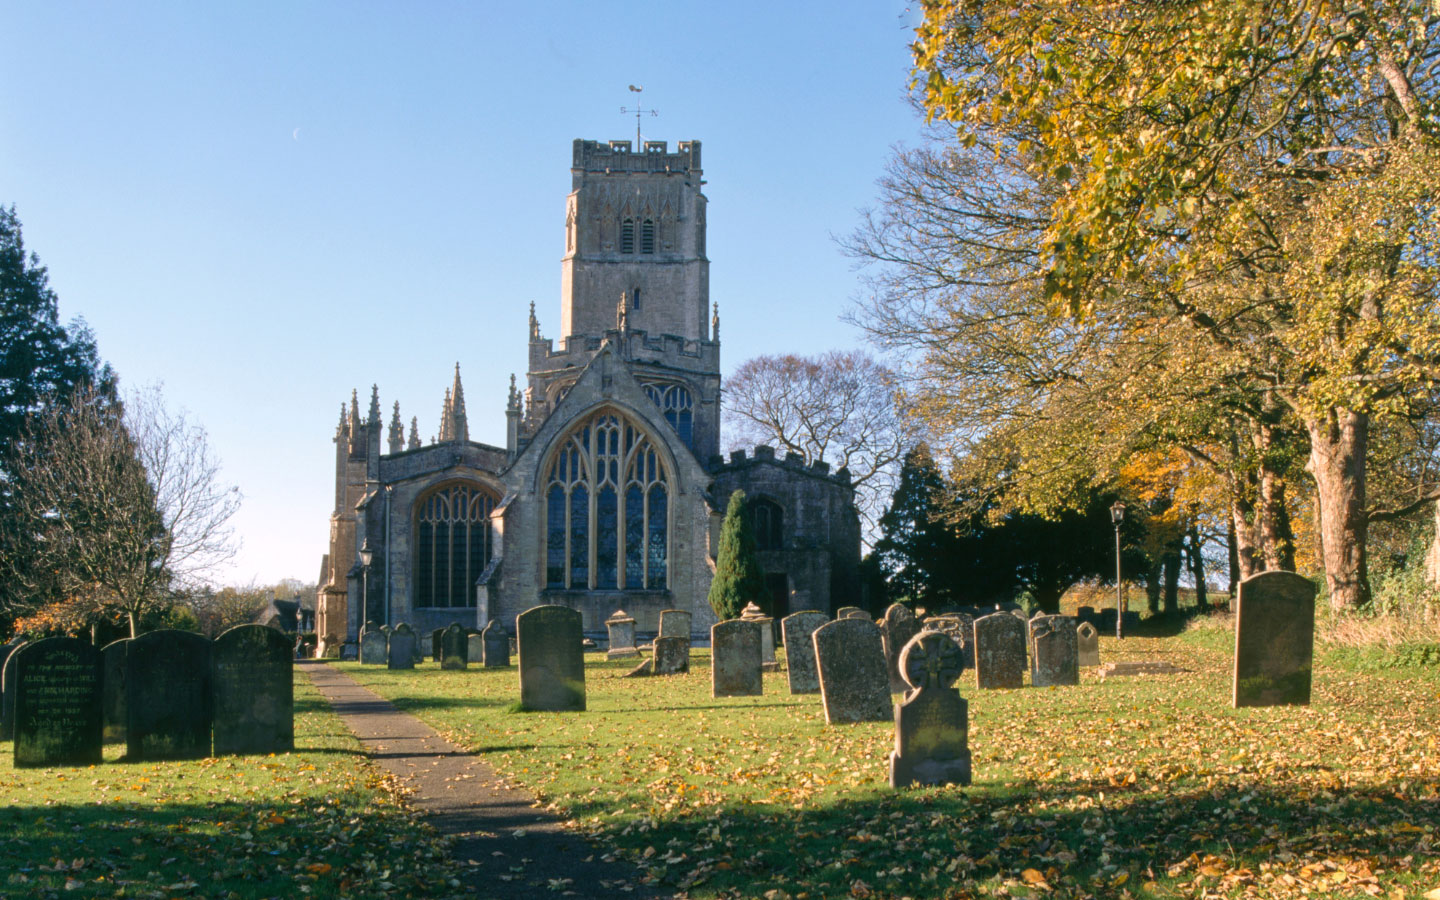 Northleach's Church of St Peter and St Paul – known as the 'Cathedral of the Cotswolds'